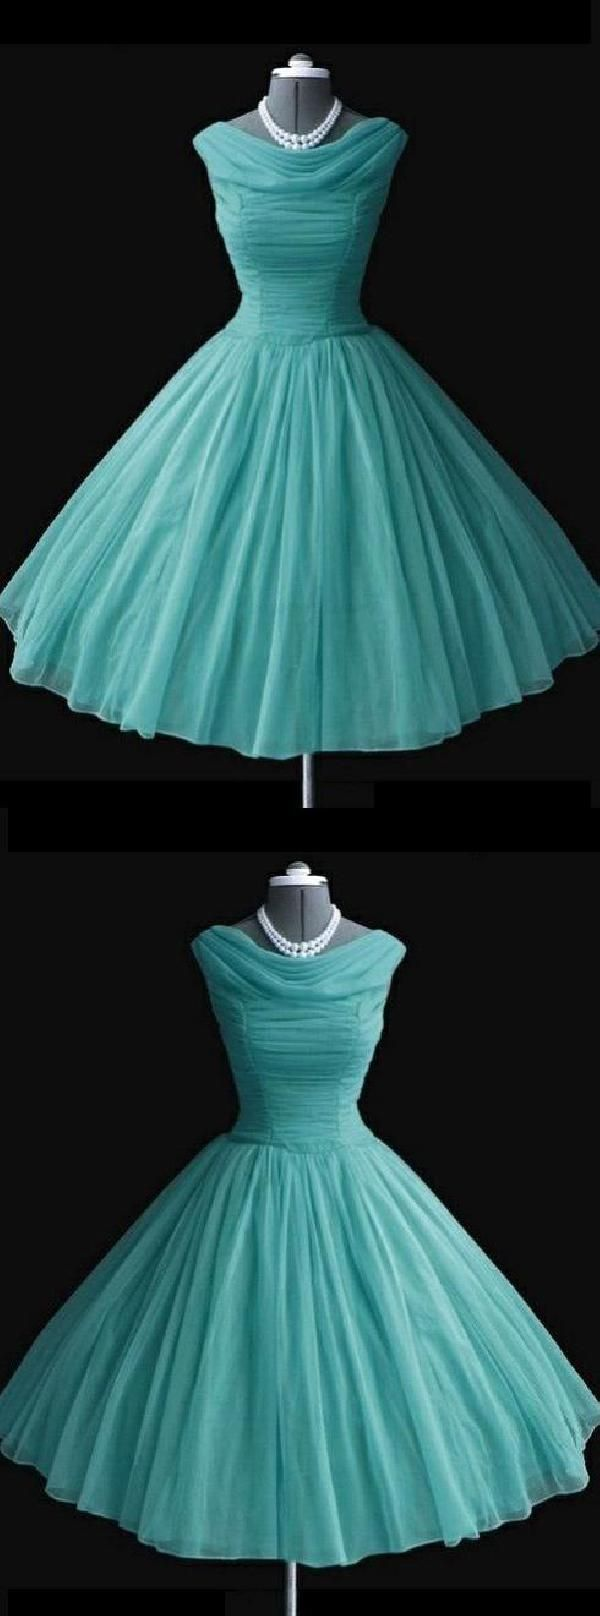 Hot sale comely vintage prom dresses prom dresses chiffon